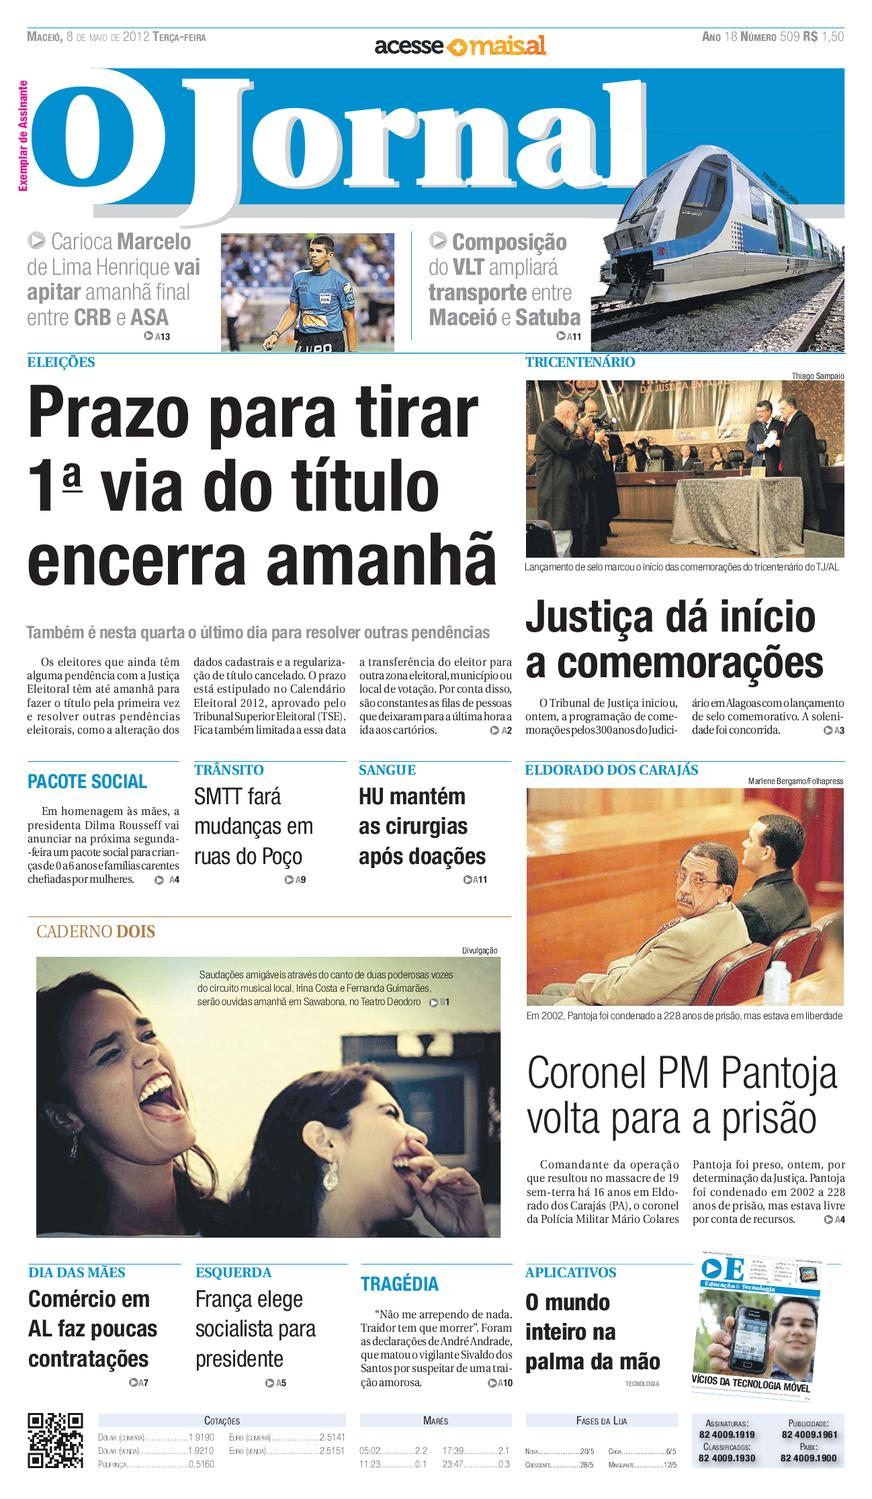 OJORNAL 08 05 2012 by OJORNAL SISTEMA DE COMUNICACAO - issuu dfe7598687bd1